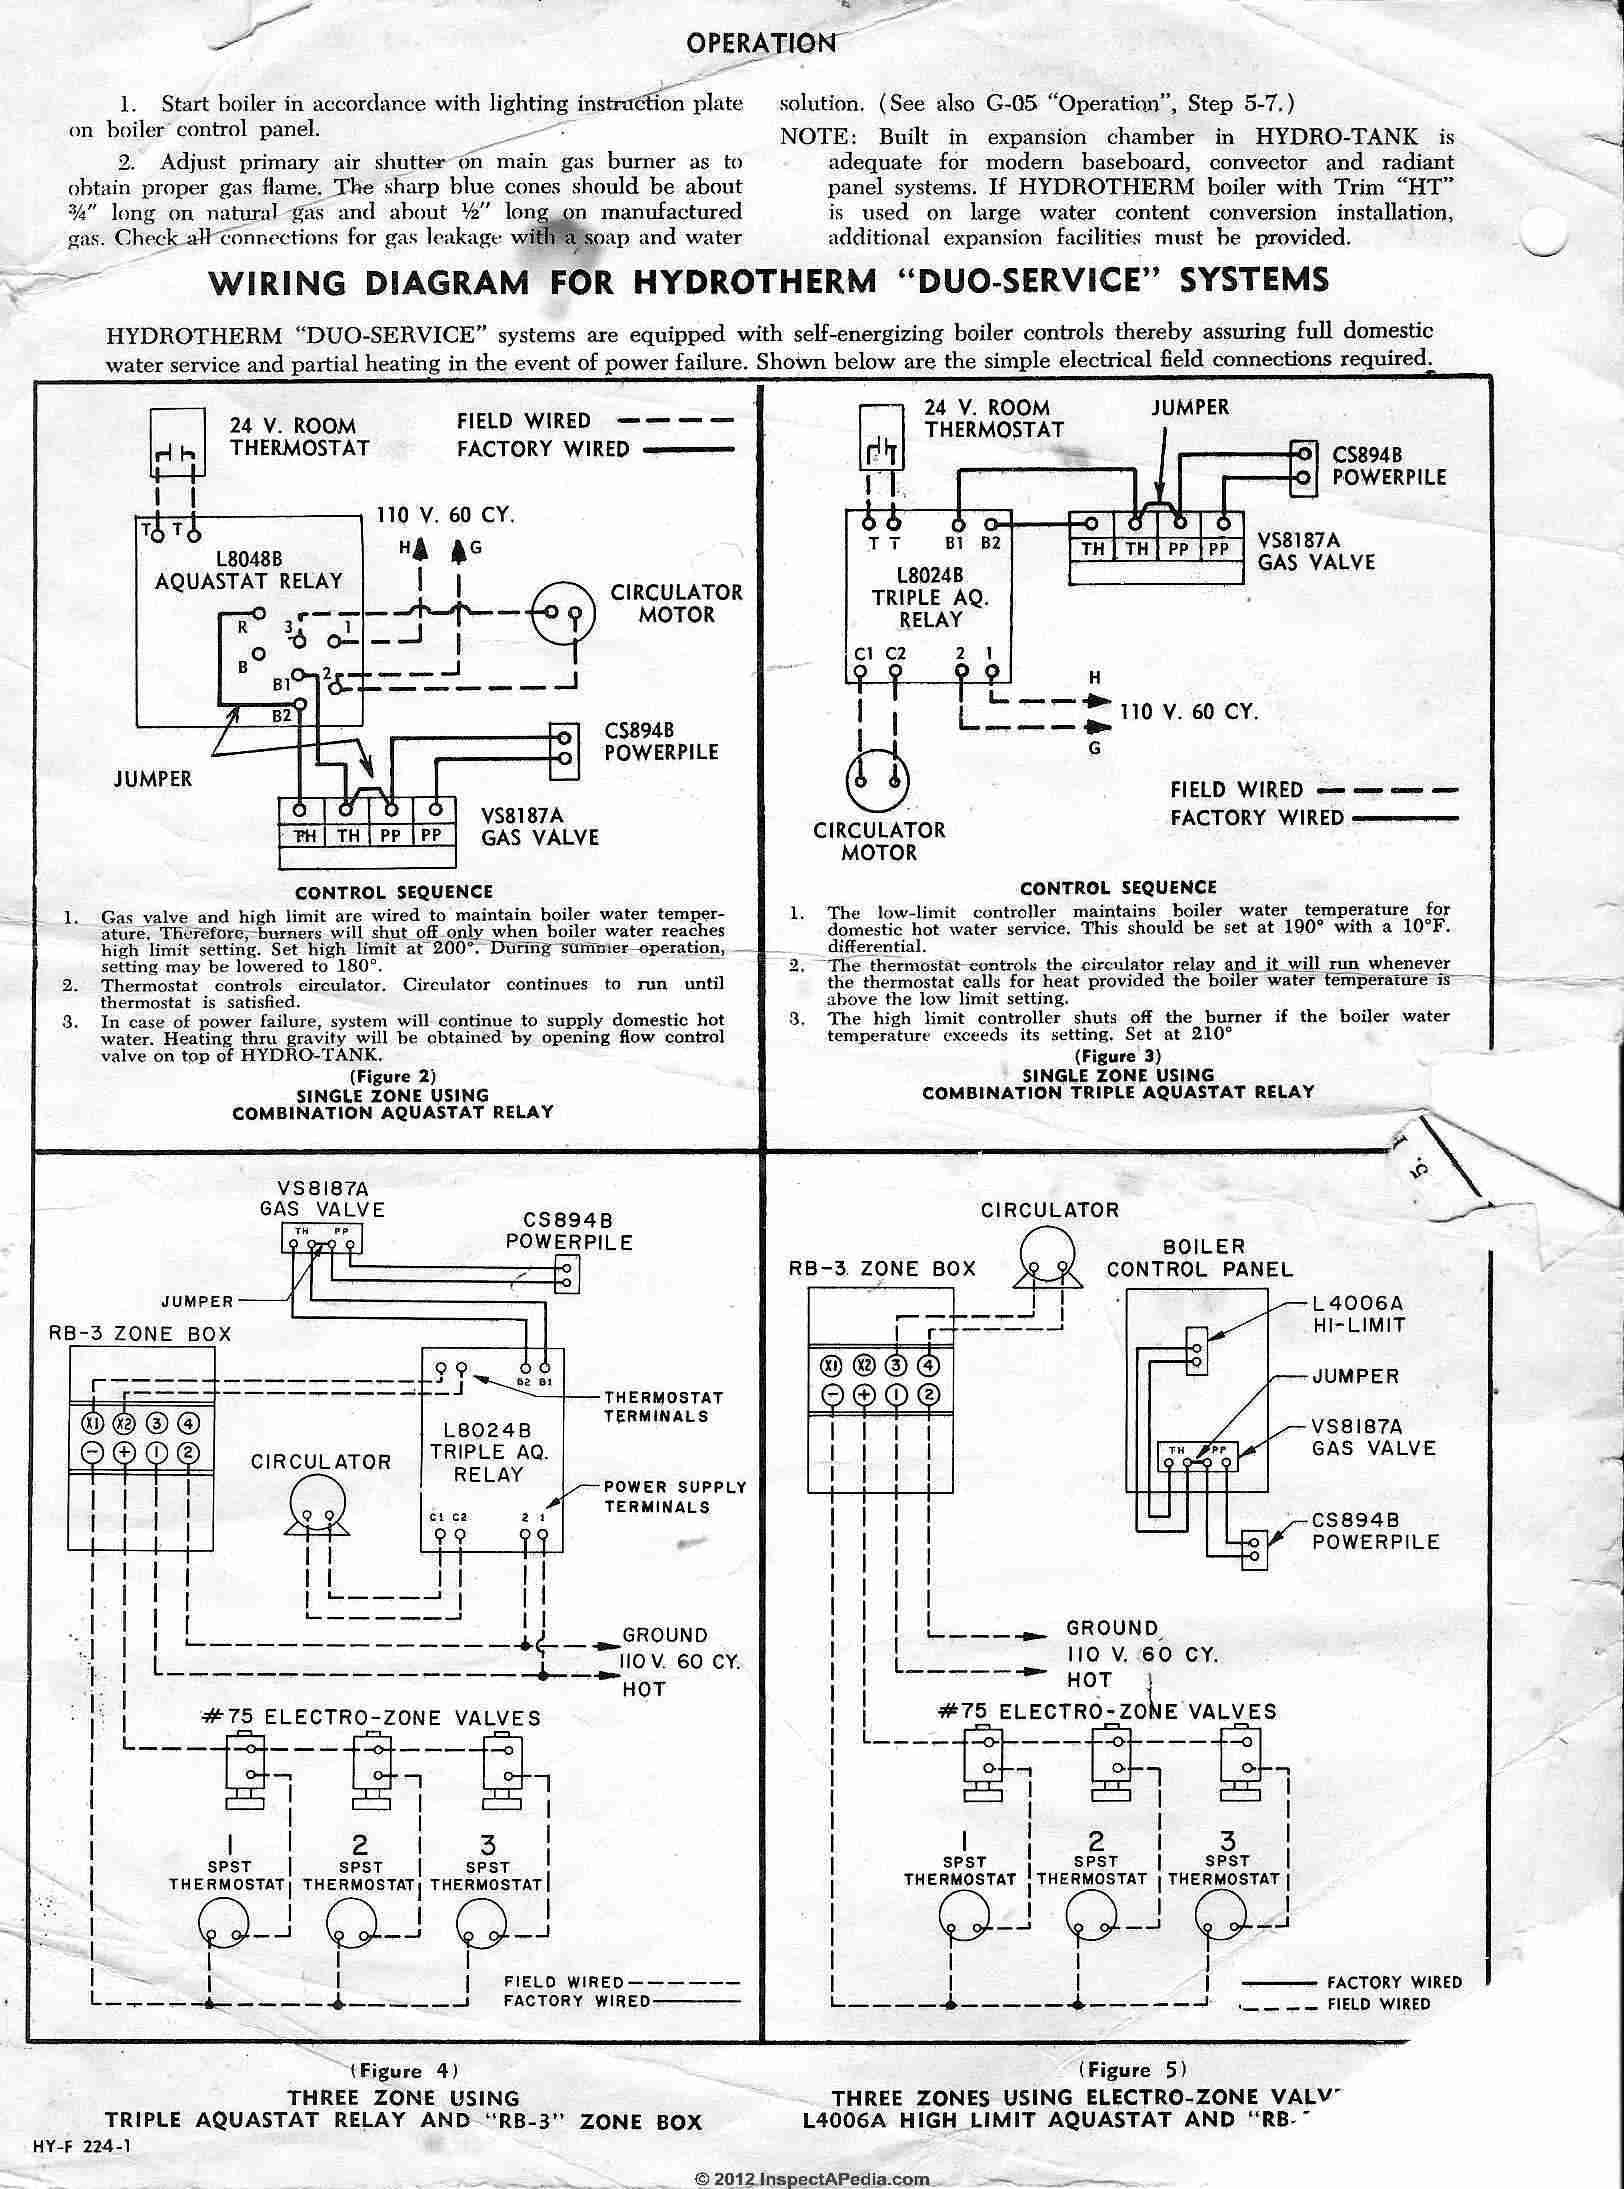 L8024B_Aquastat_0422_DJFcs heating boiler aquastat control diagnosis, troubleshooting, repair honeywell relay wiring diagram at readyjetset.co